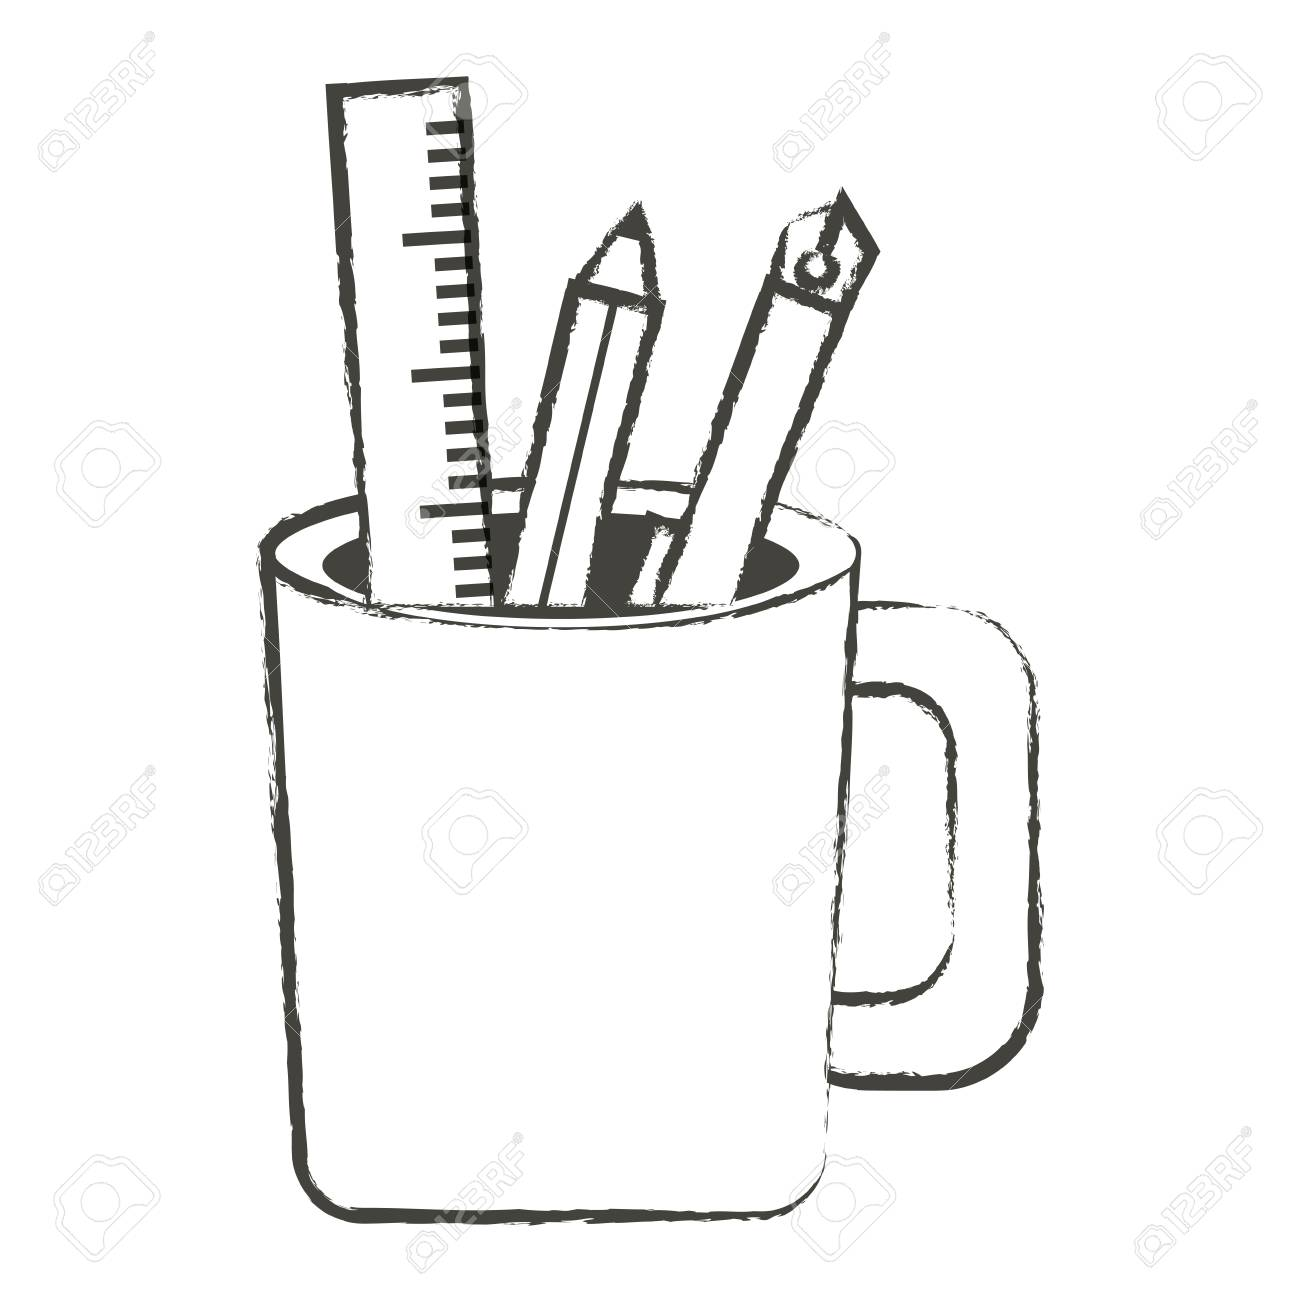 Sketch of pencil cup holder with utensils icon over white background vector illustration stock vector